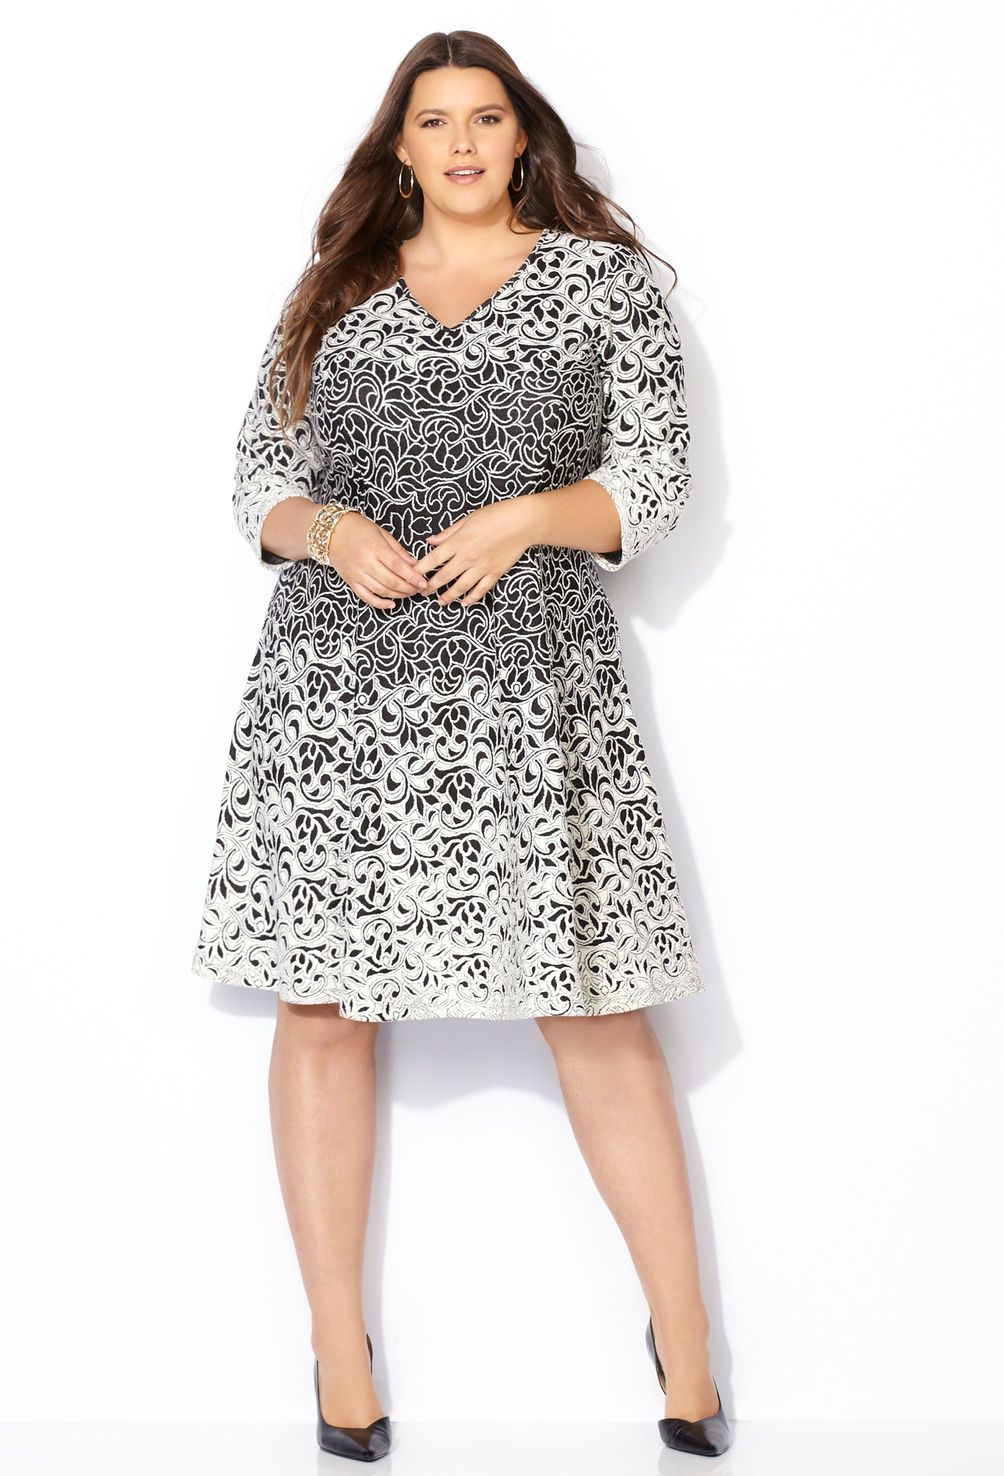 354095b7501e0 Jacquard Floral Swirl Fit and Flare Dress-Plus Size Dress-Avenue ...